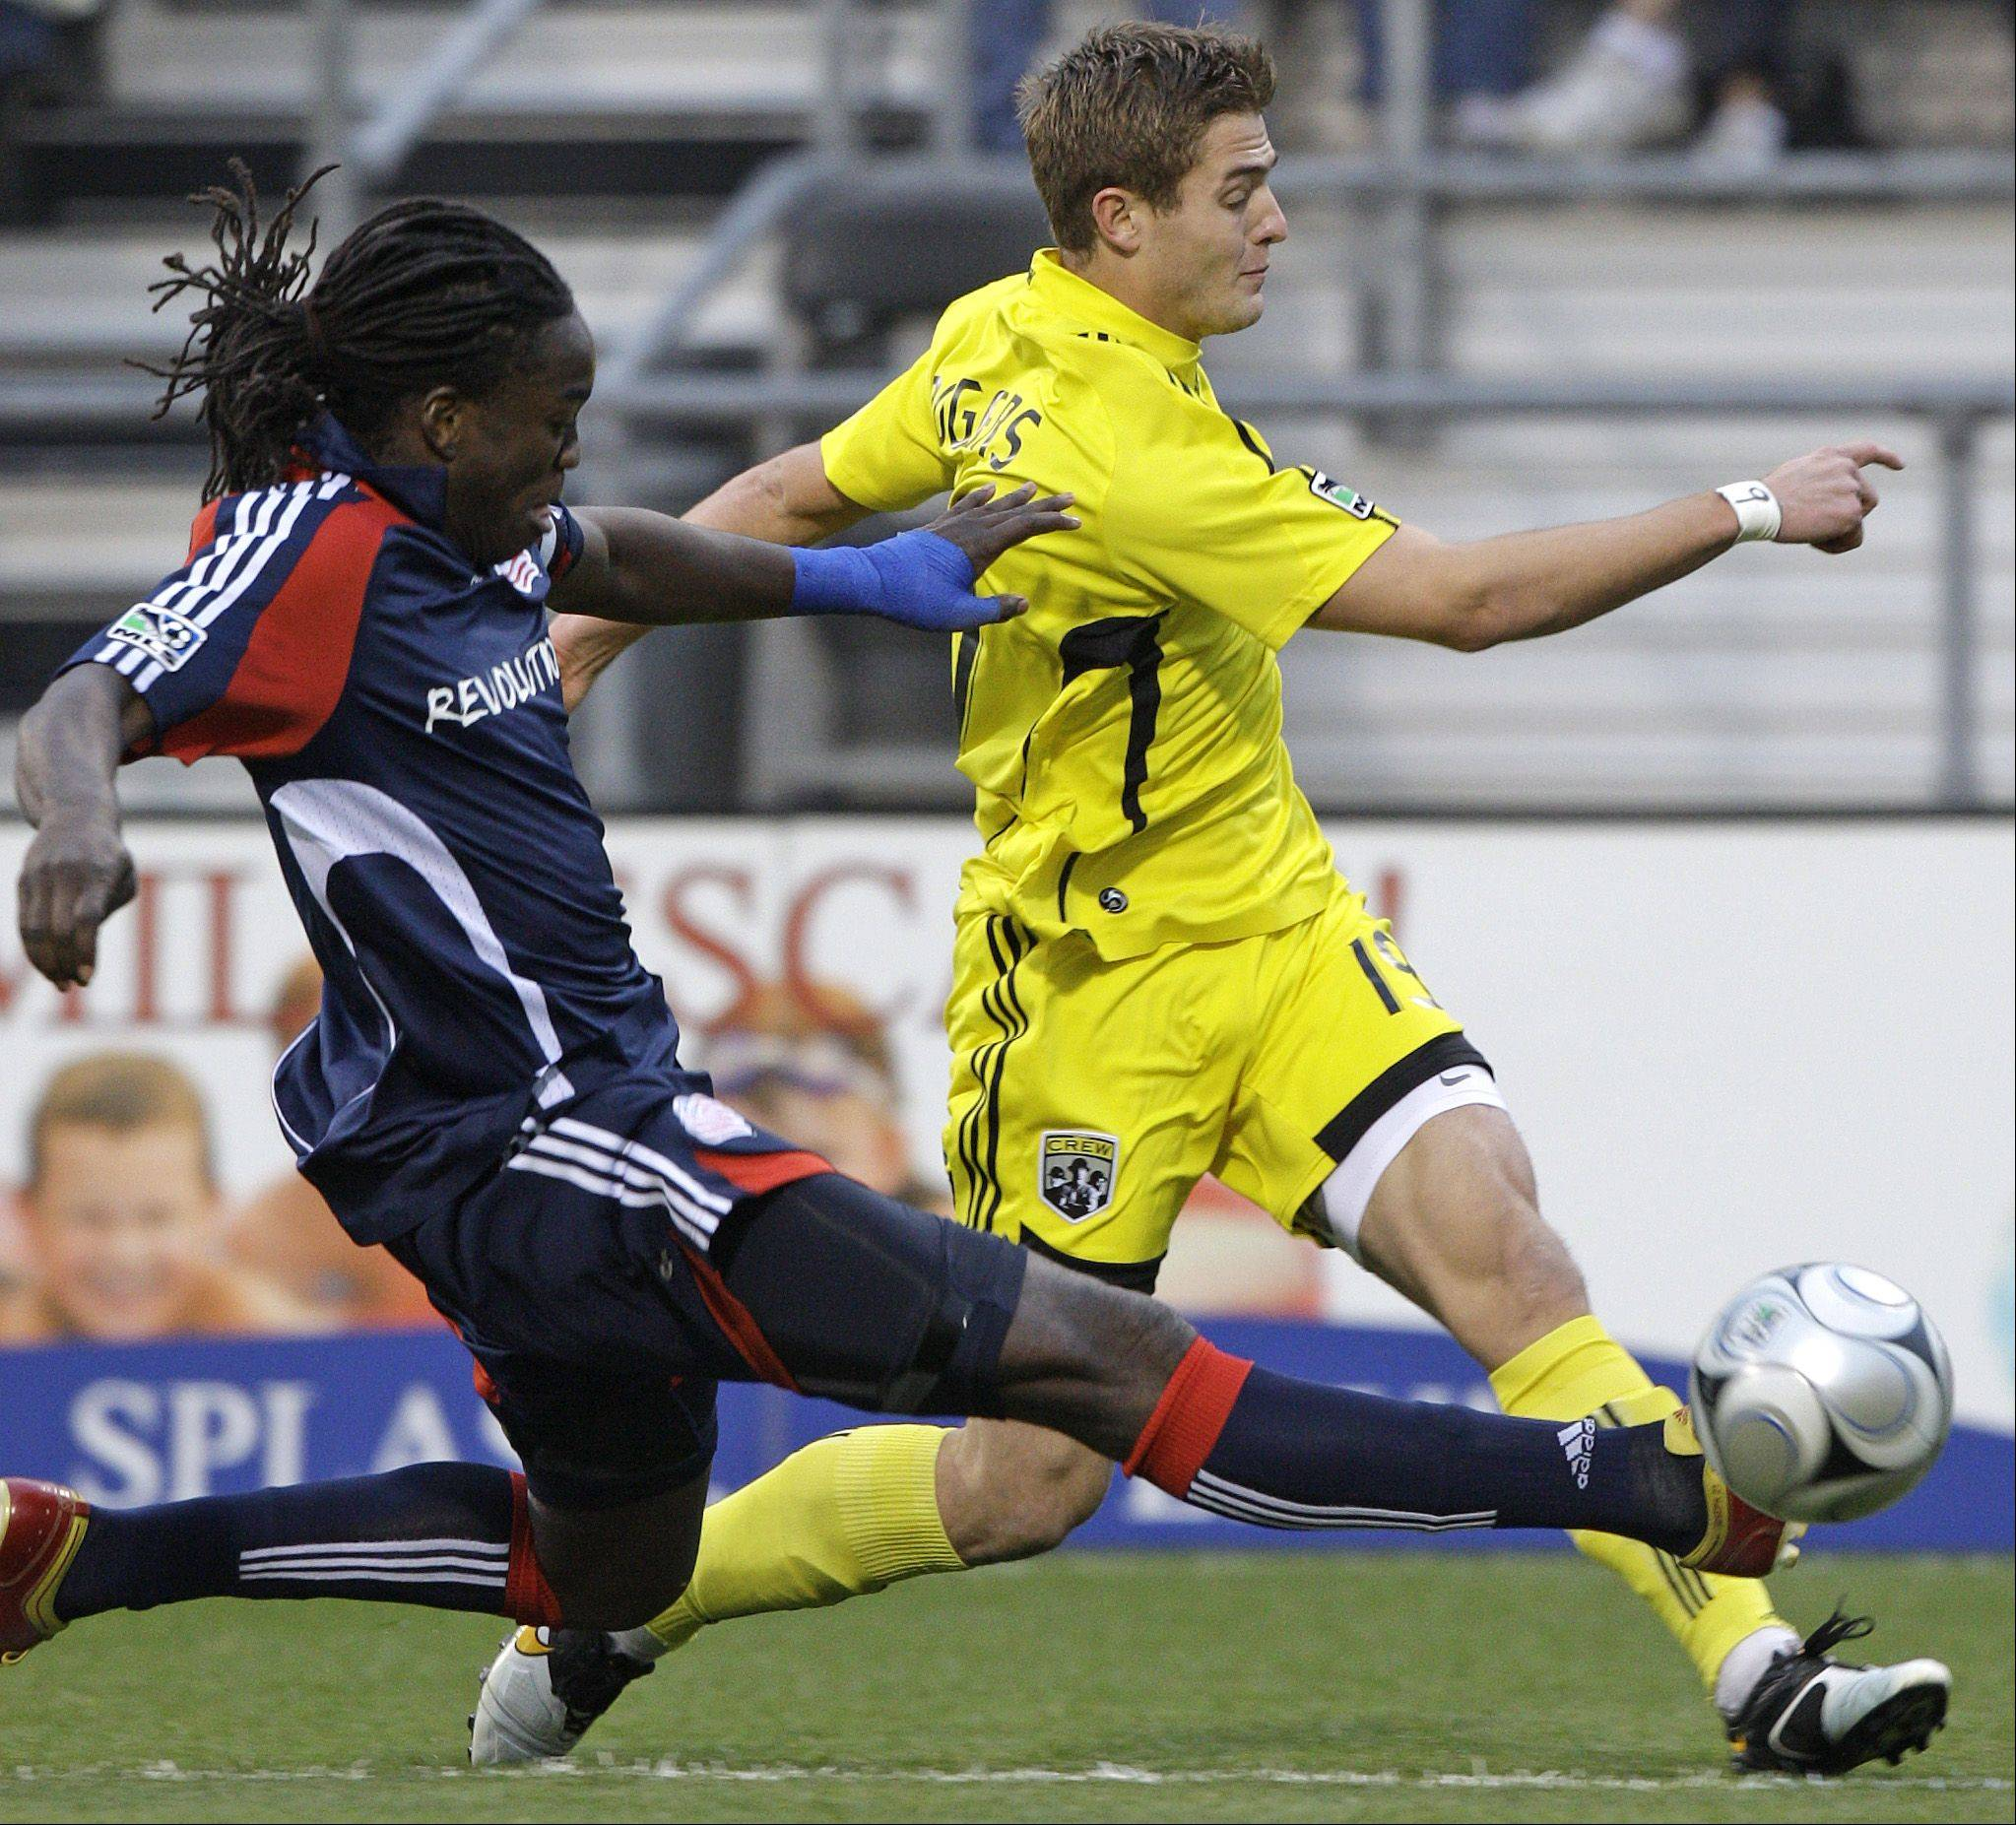 New England Revolution's Shalrie Joseph, left, tries to clear the ball past Columbus Crew's Robbie Rogers during the first half of an MLS soccer game Sunday, Oct. 25, 2009, in Columbus, Ohio.